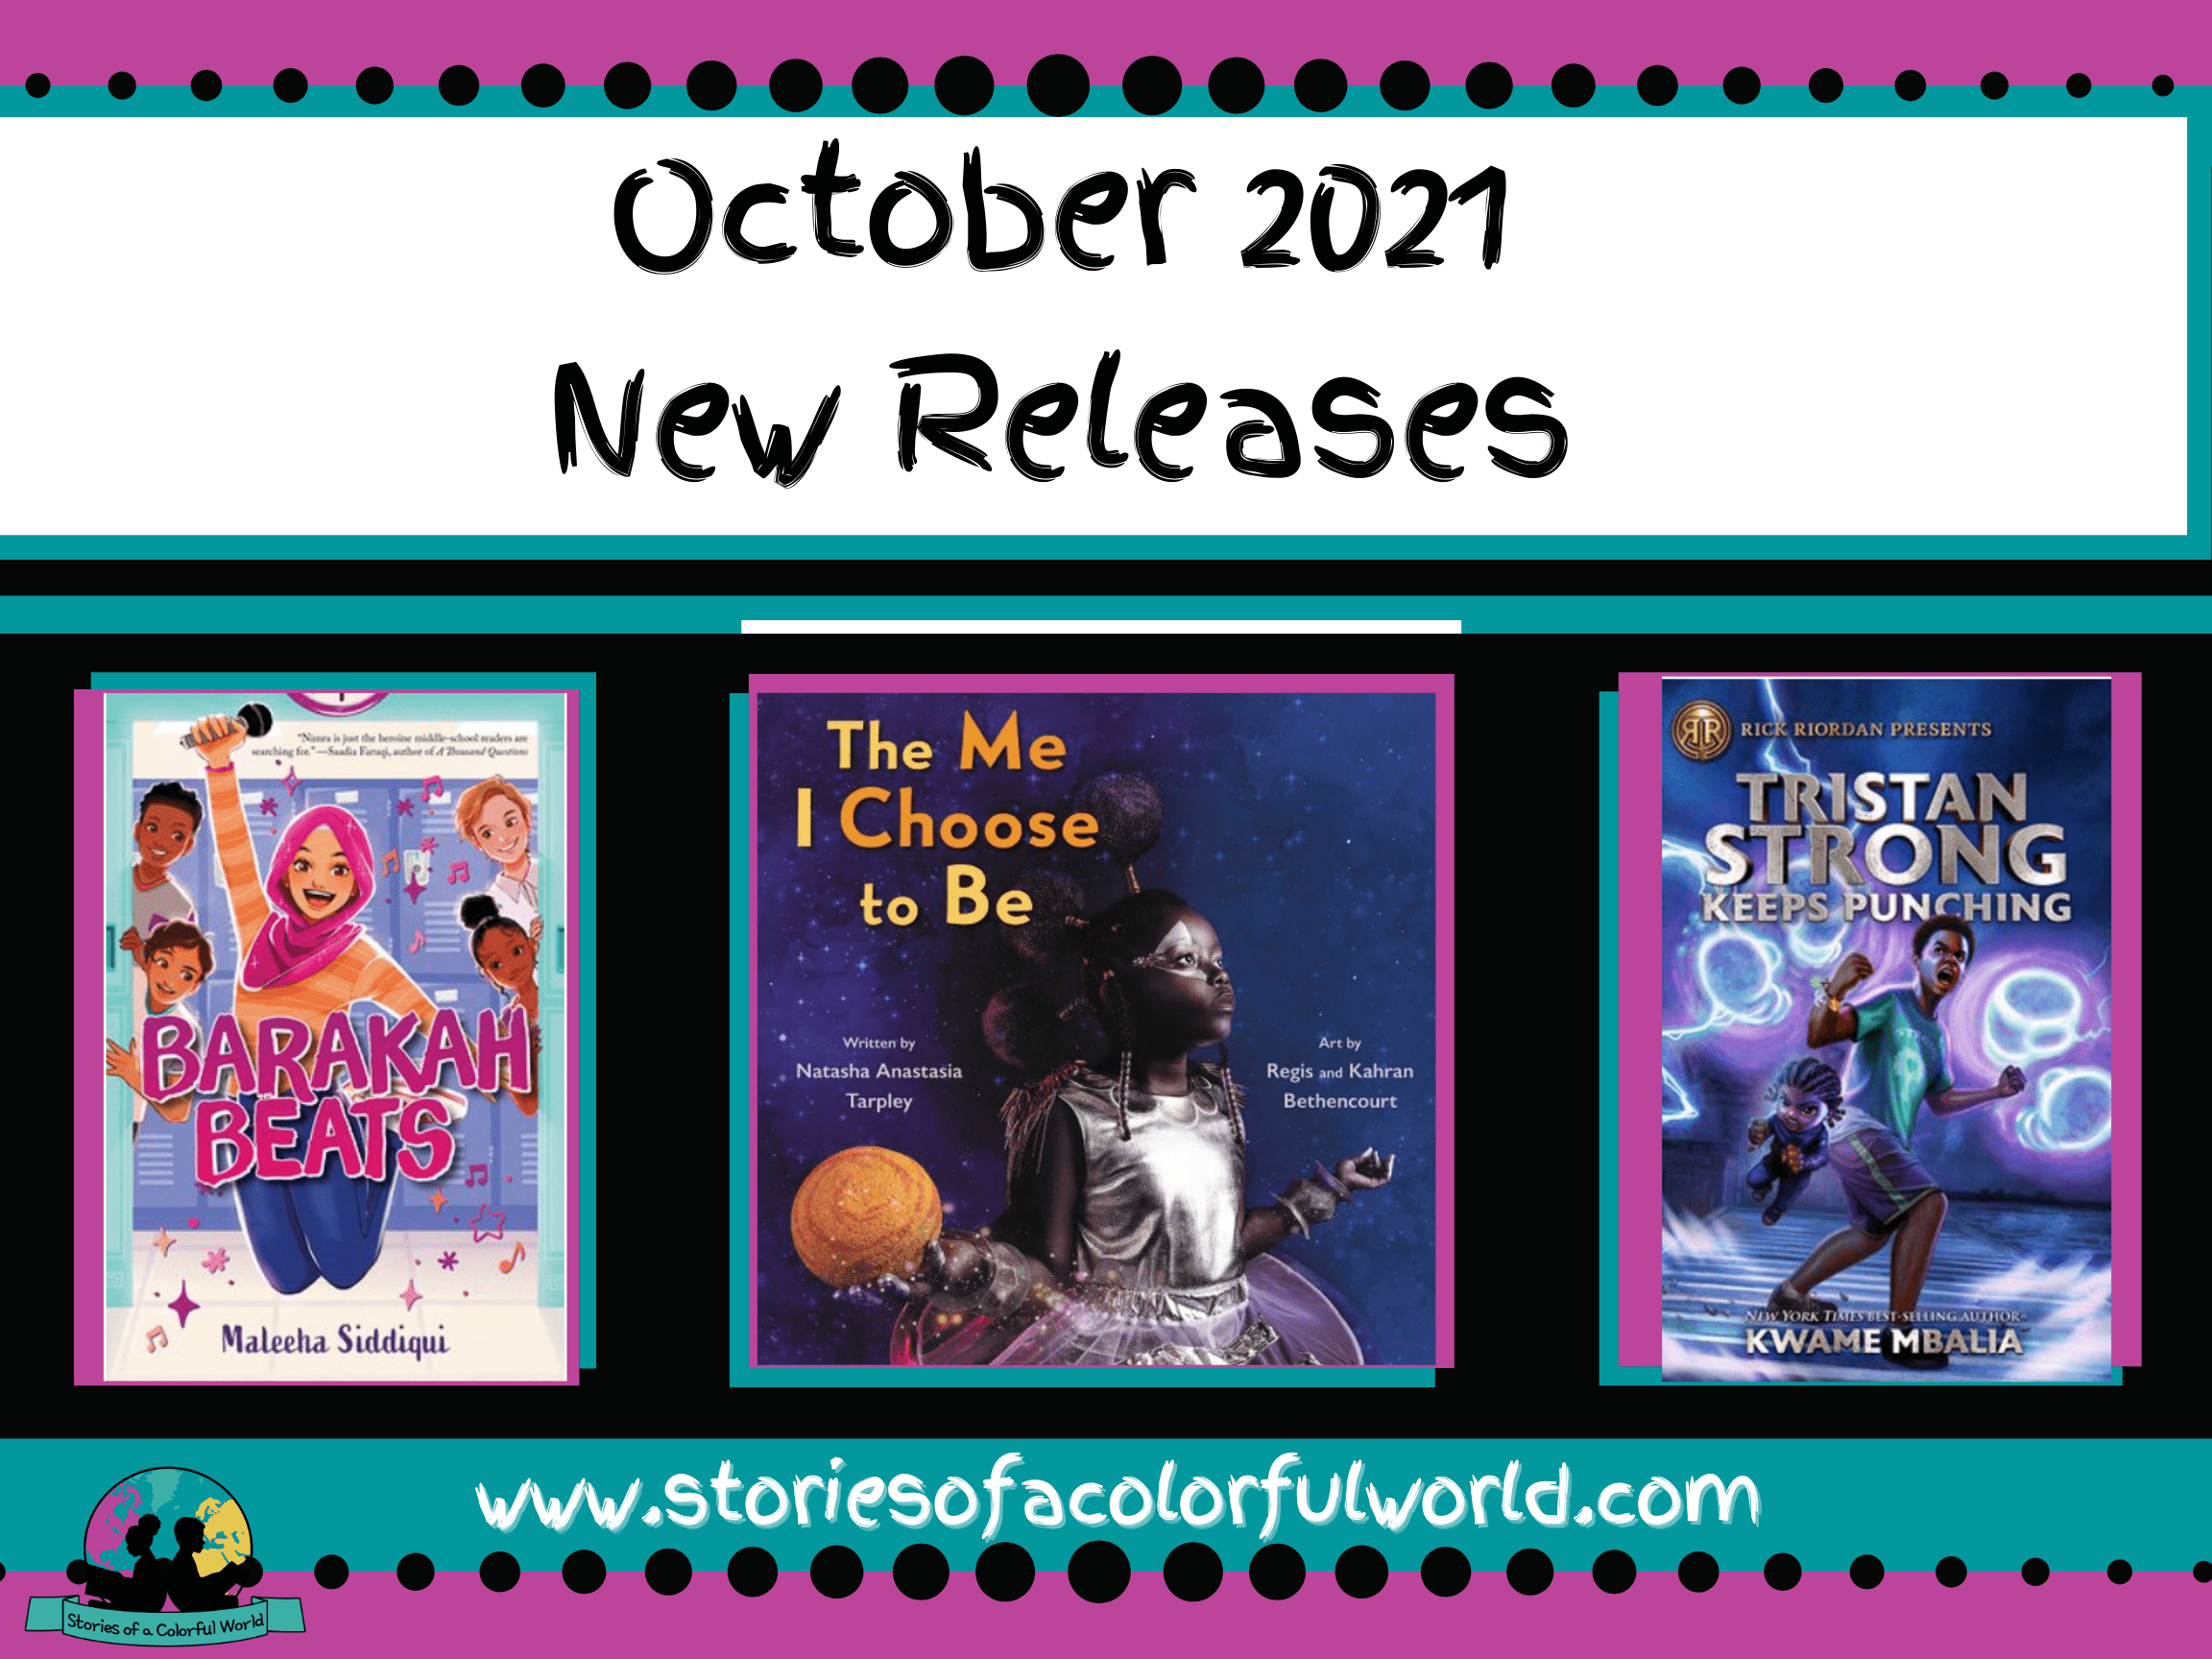 October 2021 New Book Releases